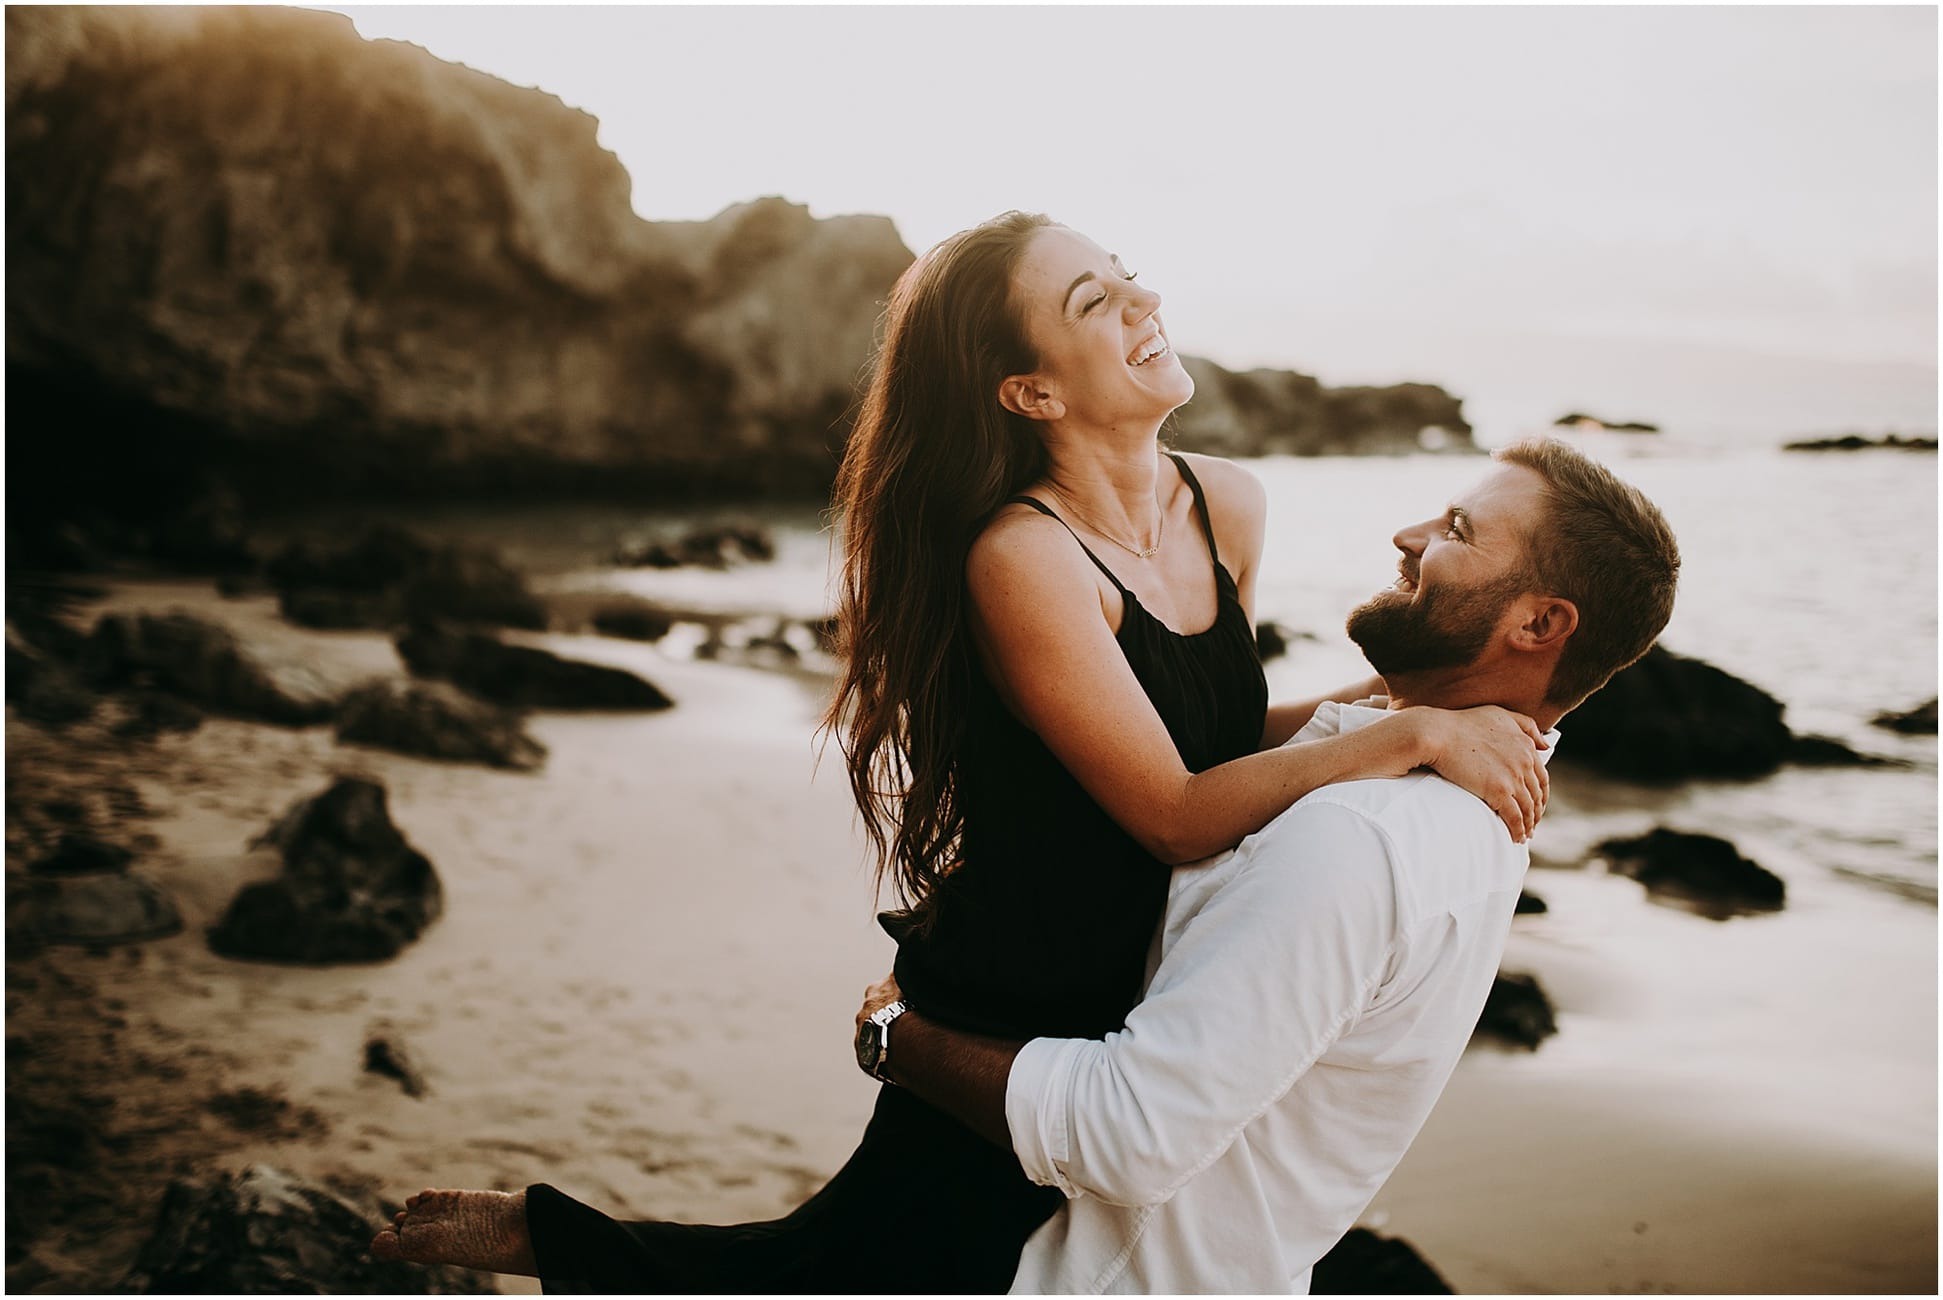 Maui engagement photographer16